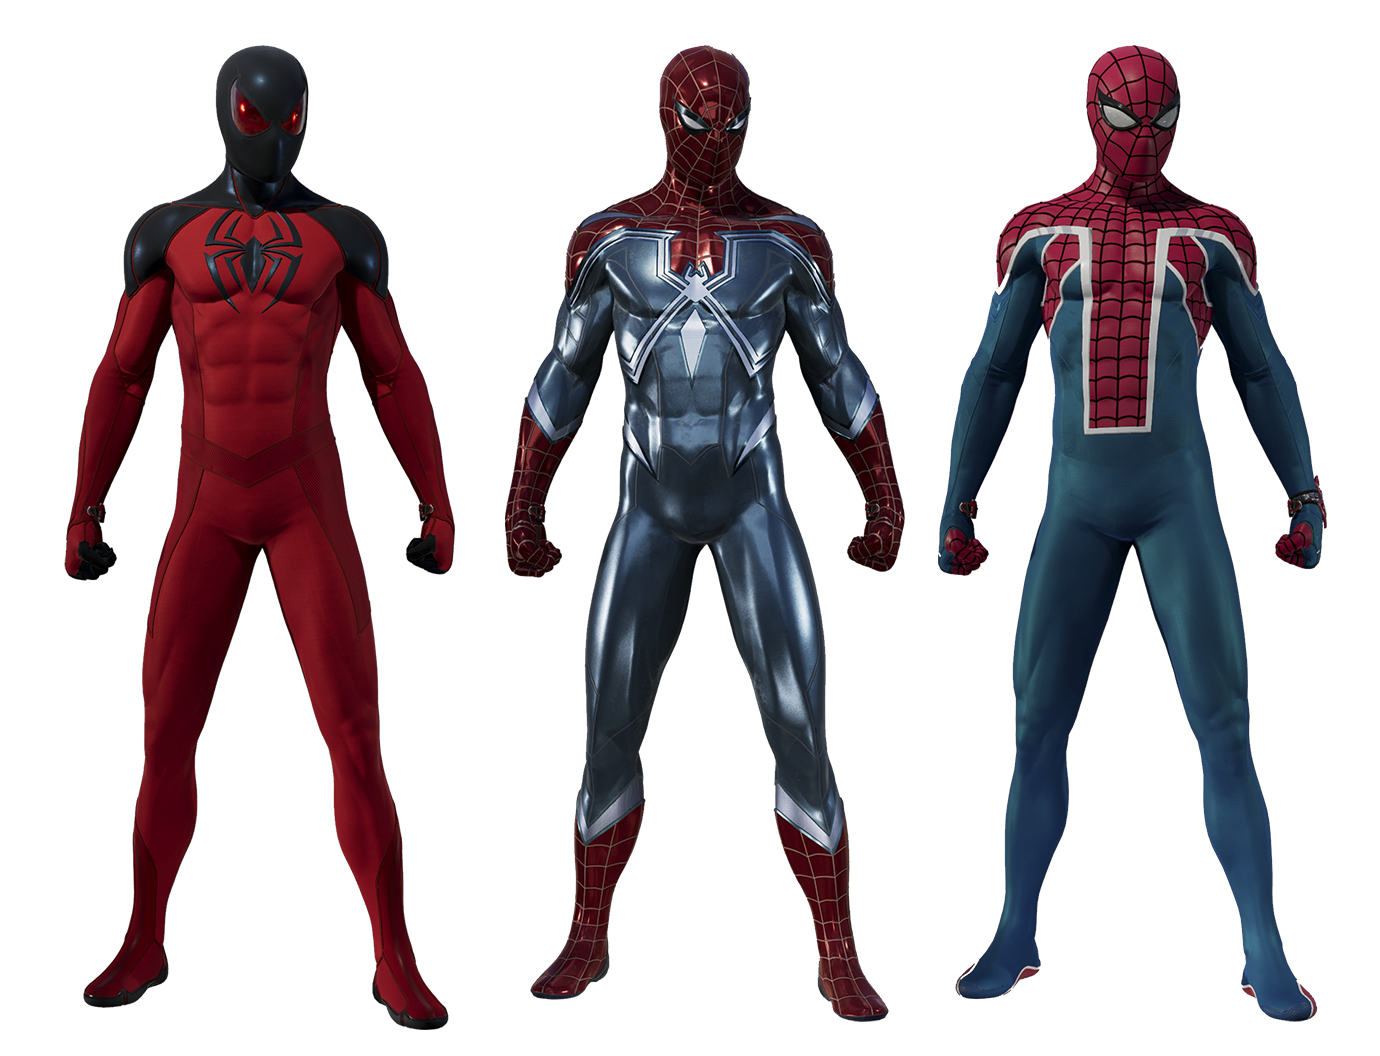 spider-man bonus suit